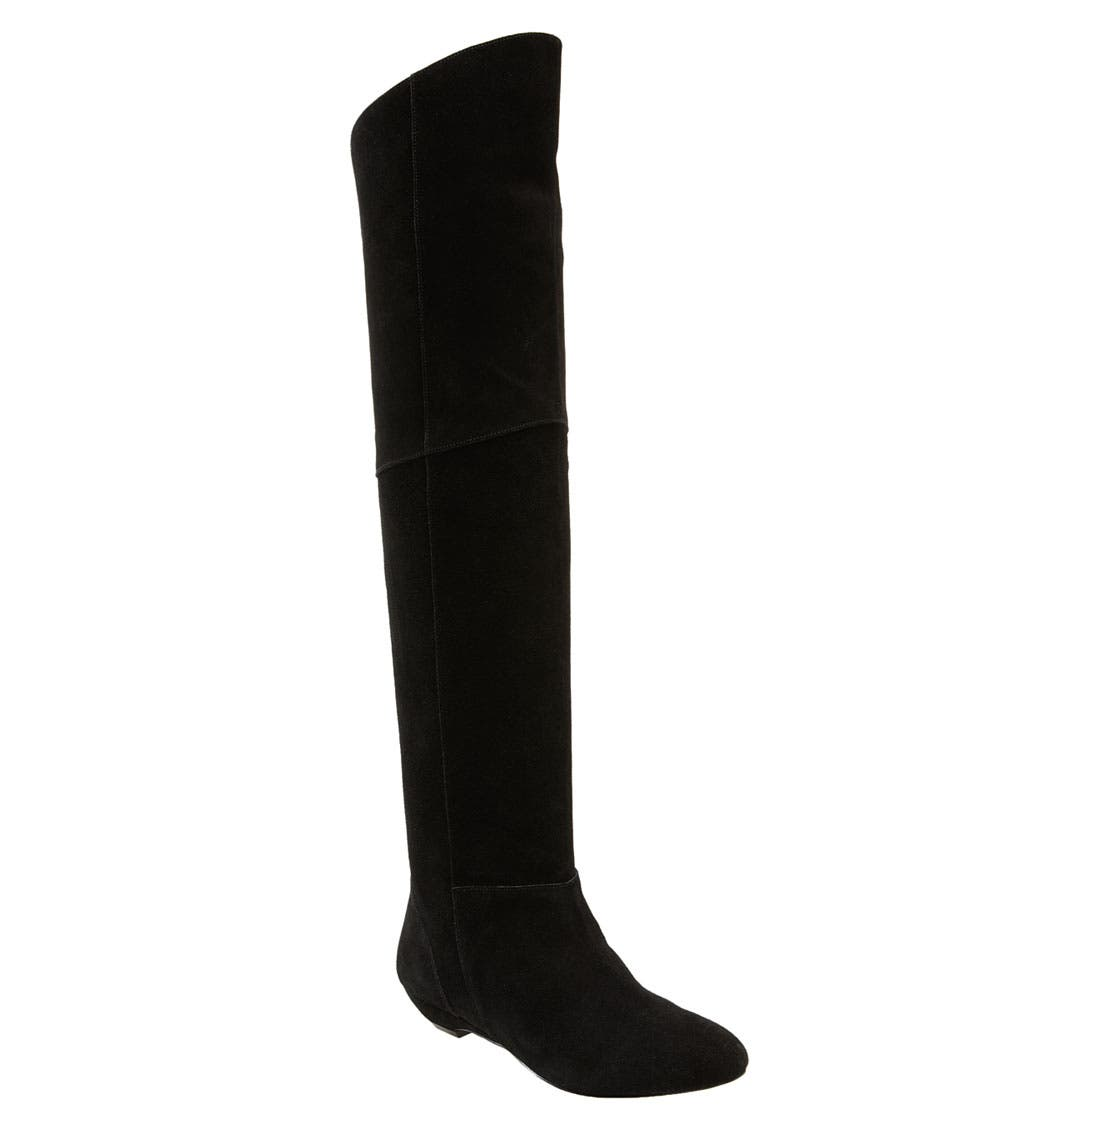 'Overrpas' Over the Knee Boot,                             Main thumbnail 1, color,                             006